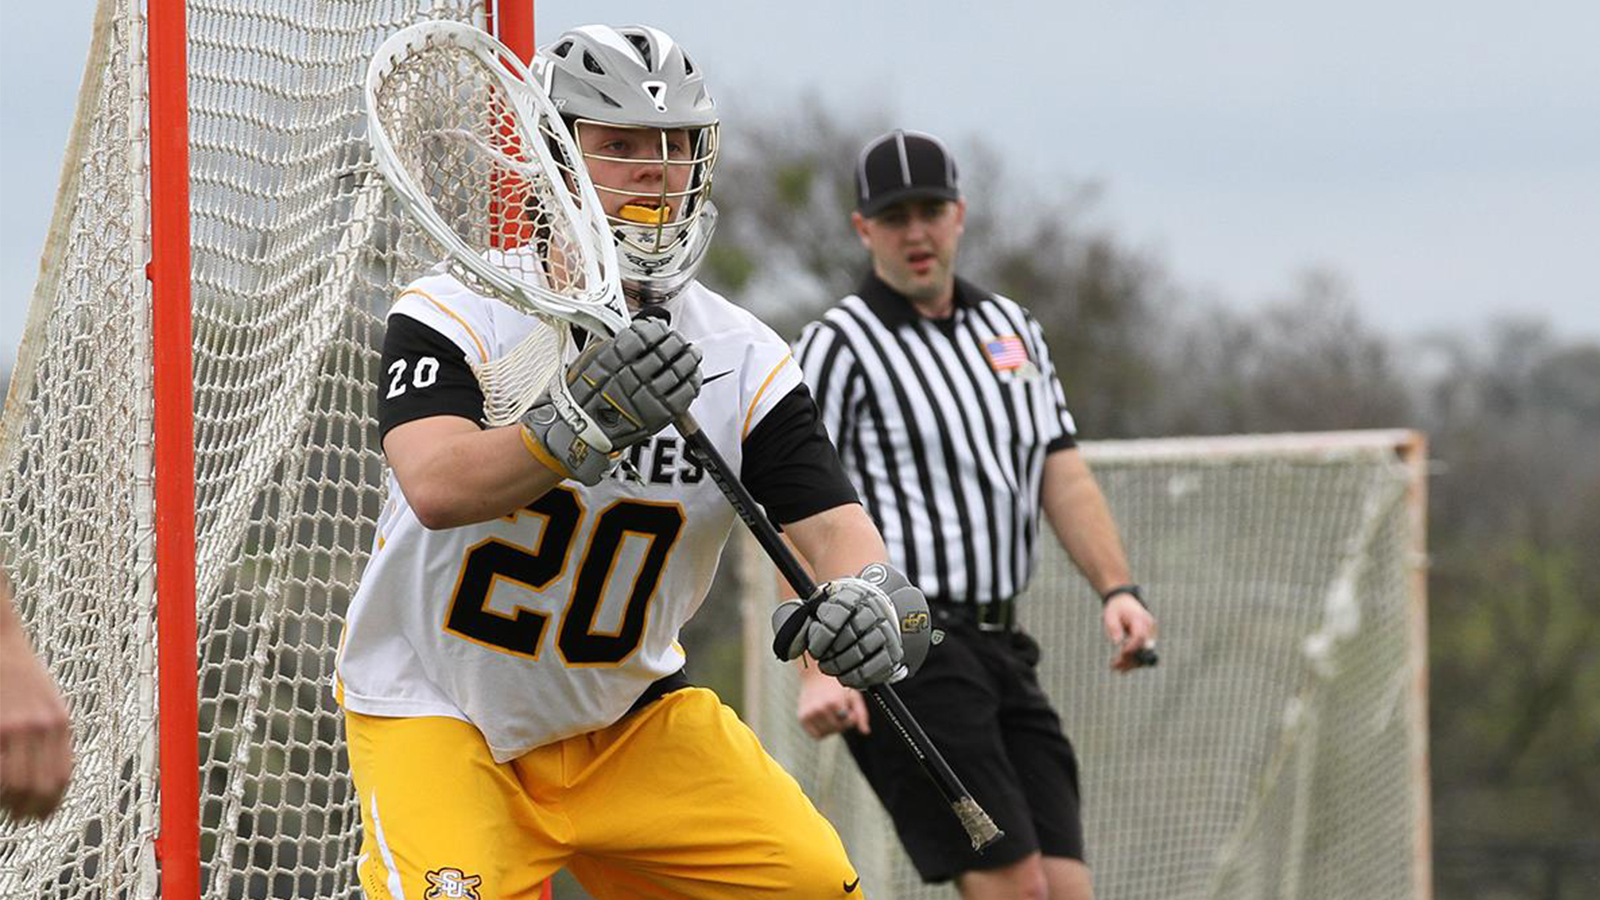 Men's Lax Holds Off Whitter in Thriller